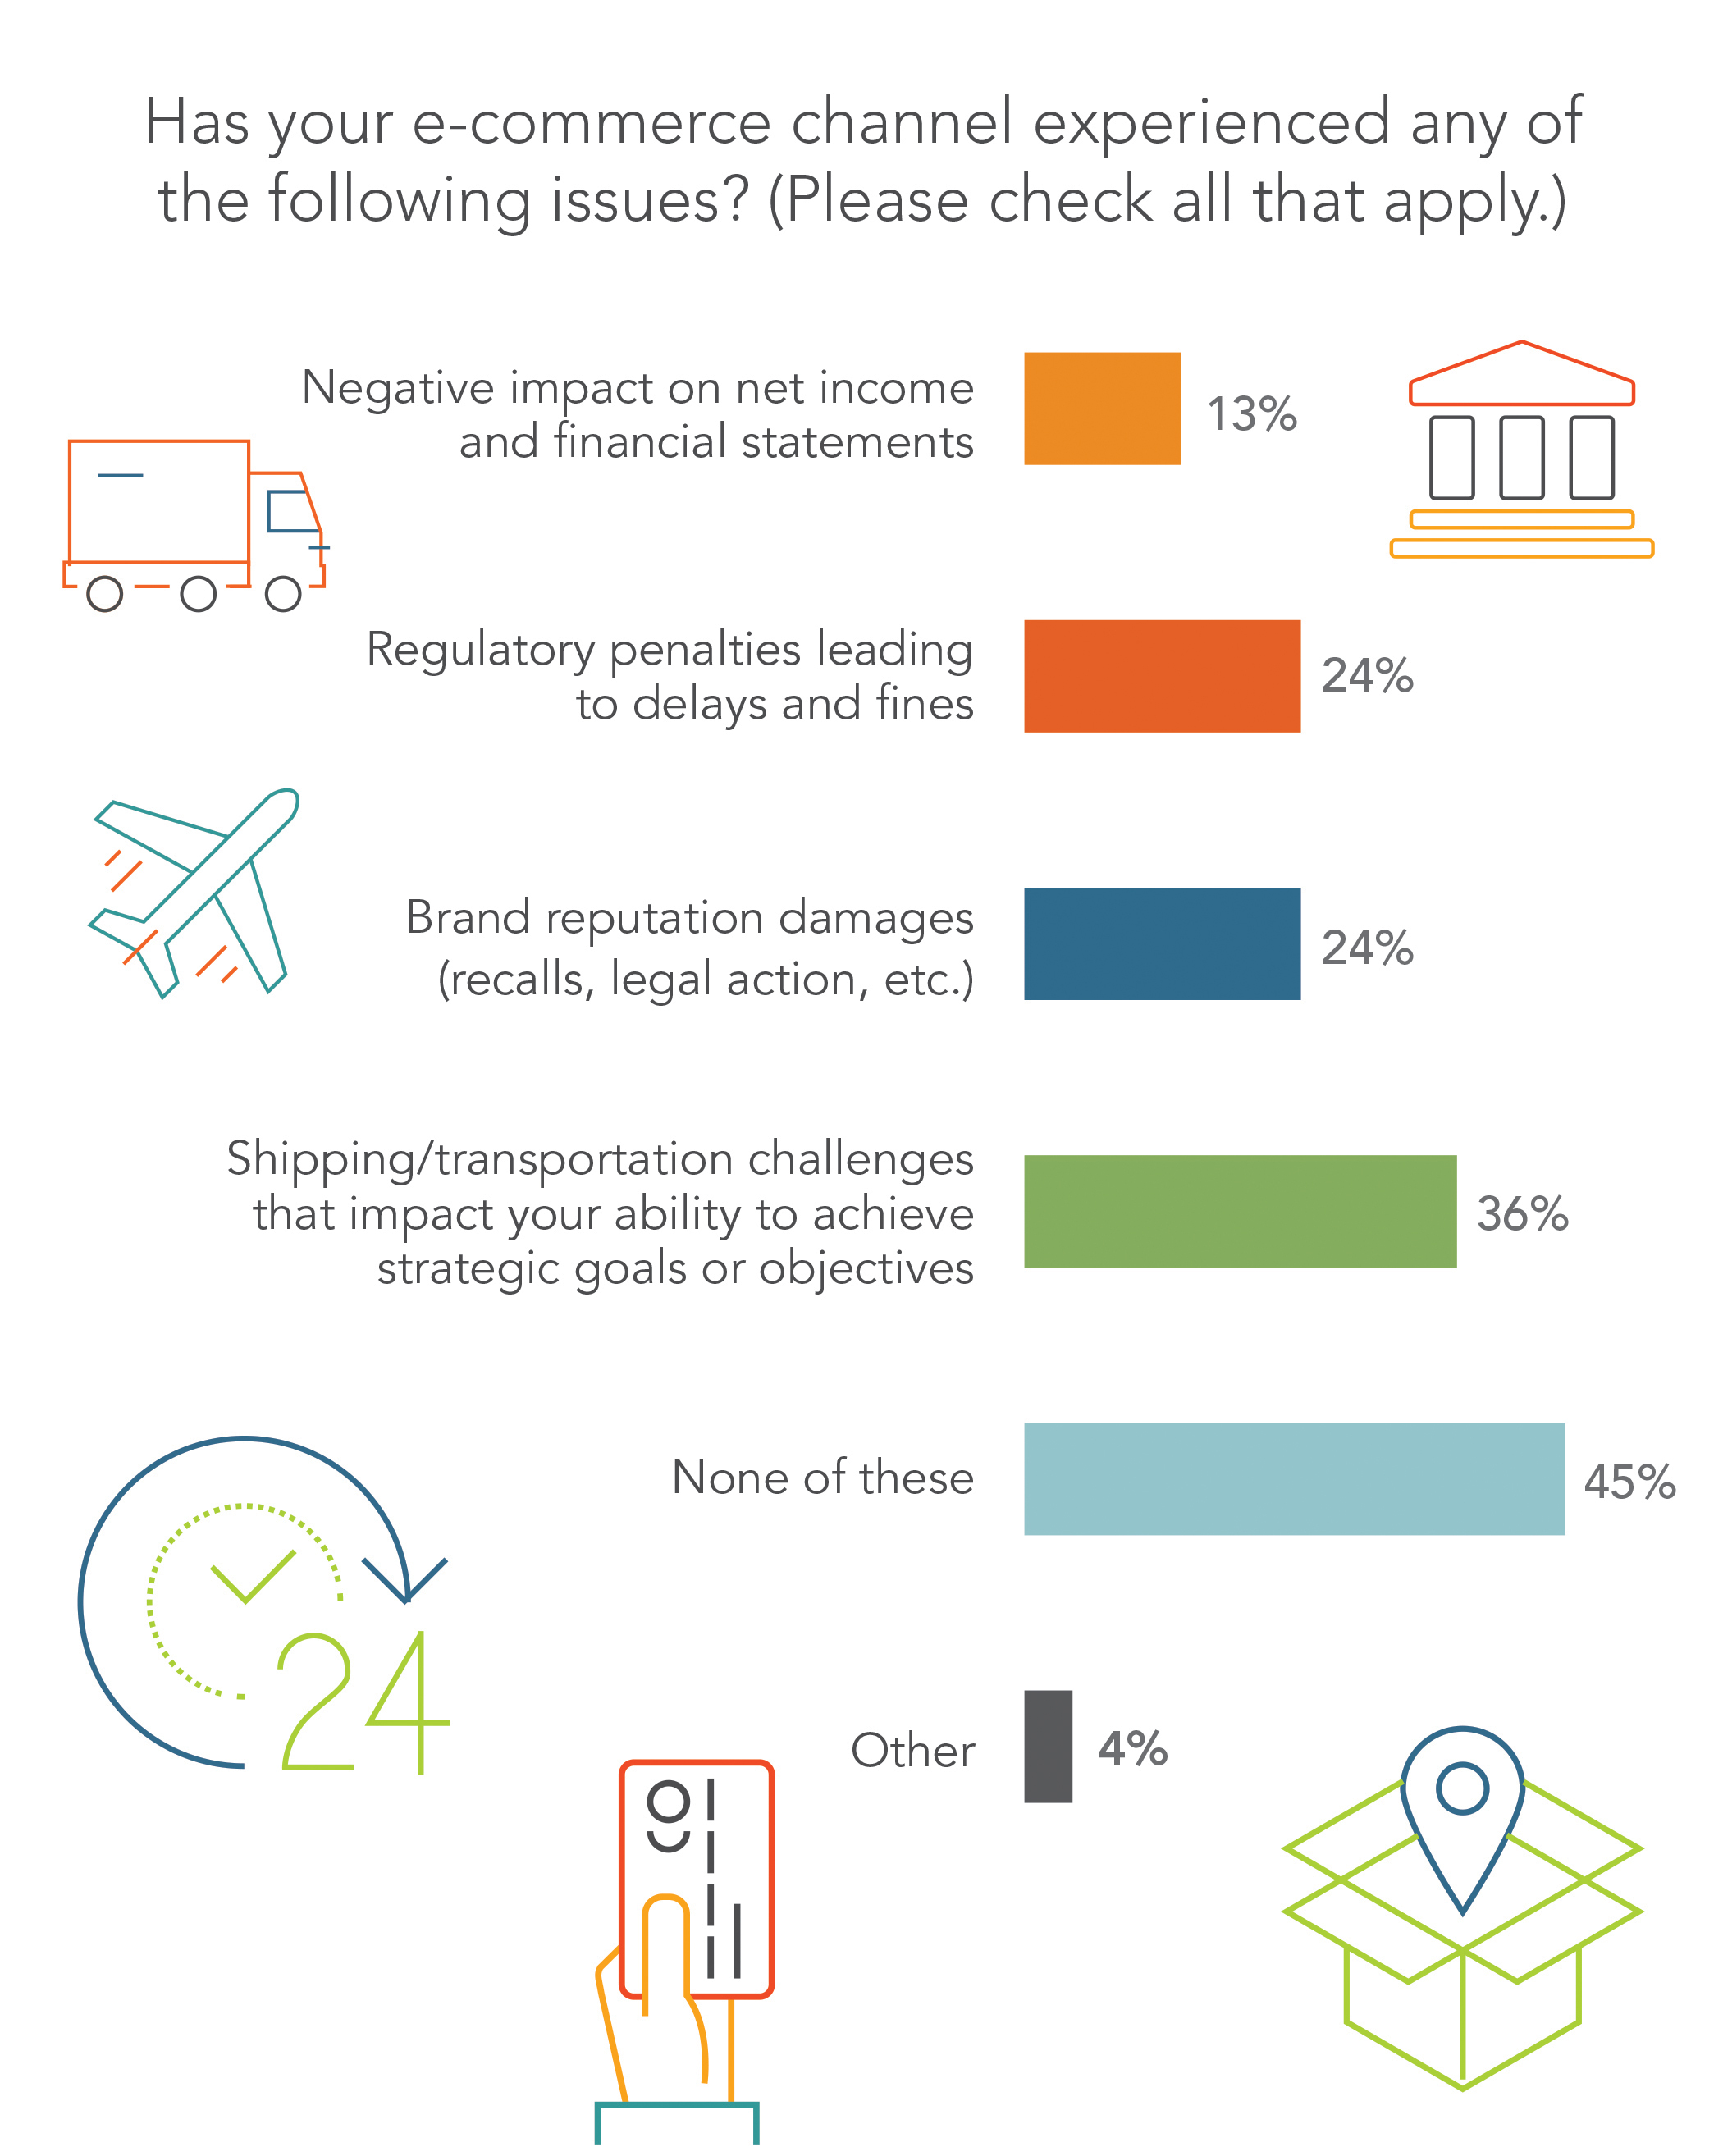 Survey respondents share what issues their e-commerce channel has encountered, including logistical delays, supply chain complications, or regulatory penalties. (Graphic: Amber Road)